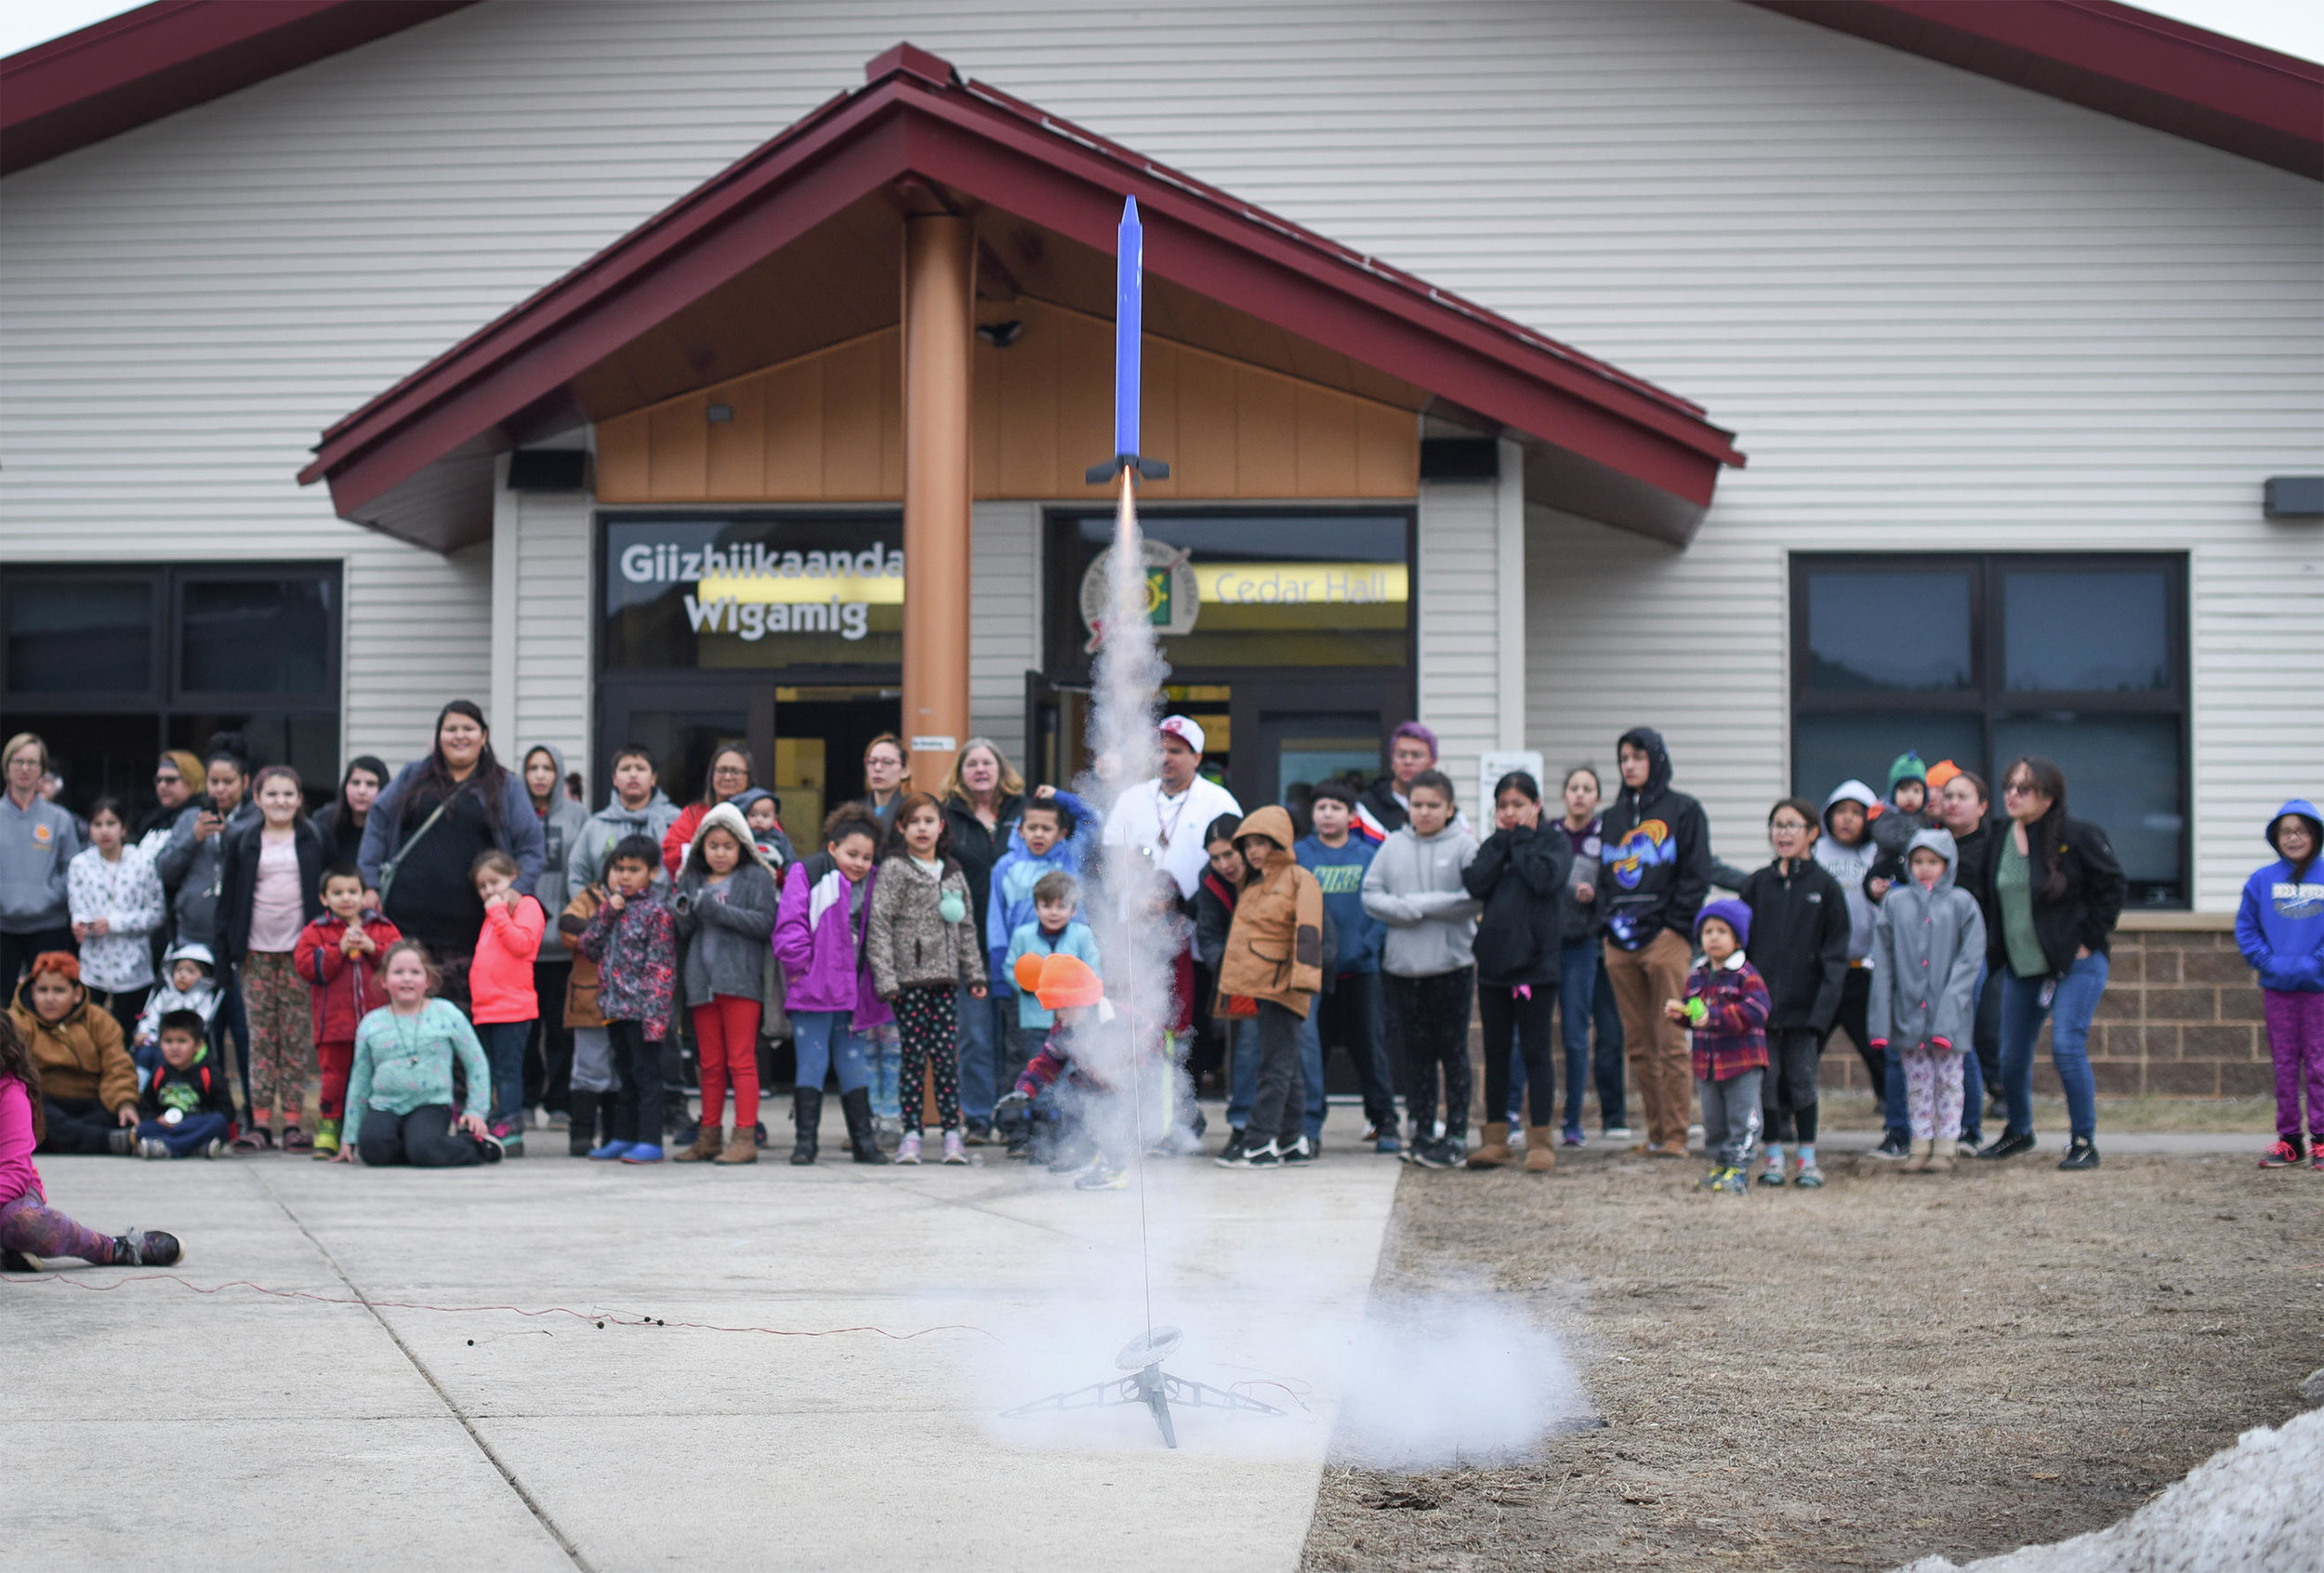 A crowd watches a rocket launch on Thursday at Leech Lake Tribal College's fourth annual Across the Universe event. (Jillian Gandsey | Bemidji Pioneer)